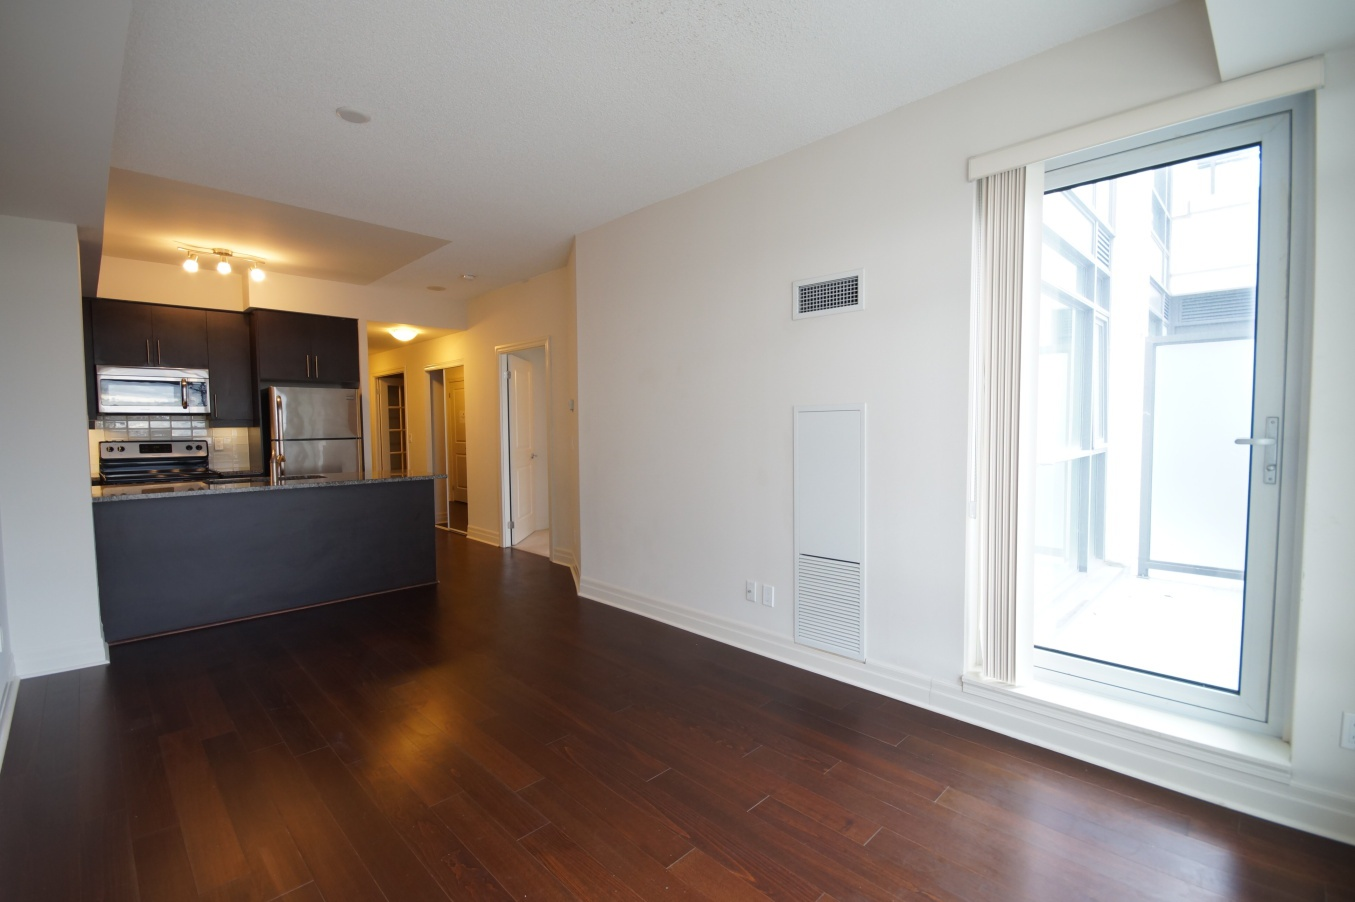 Condo for rent at 8130 Birchmount Rd, Markham, ON. This is the empty room with natural light, stainless steel and hardwood floor.